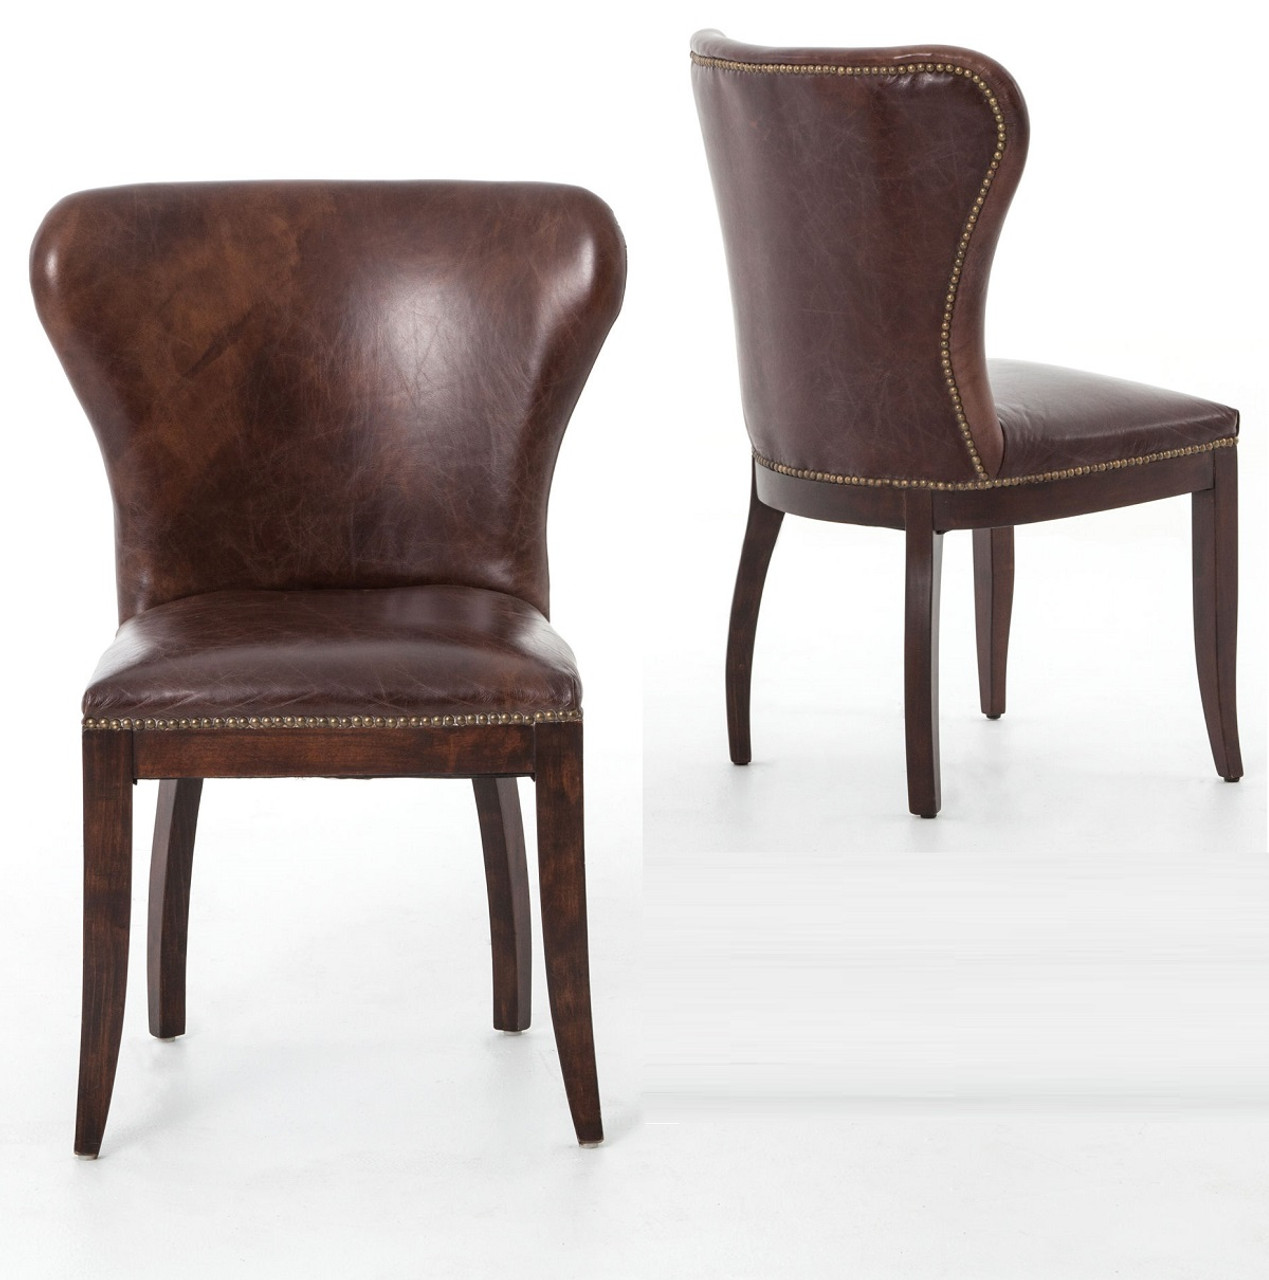 Gorgeous Casters Lear Chairs Wayfair Richmond Vintage Tan Lear Wingback Chair Richmond Vintage Tan Lear Wingback Chair Zin Home Lear Chairs houzz-02 Leather Dining Chairs